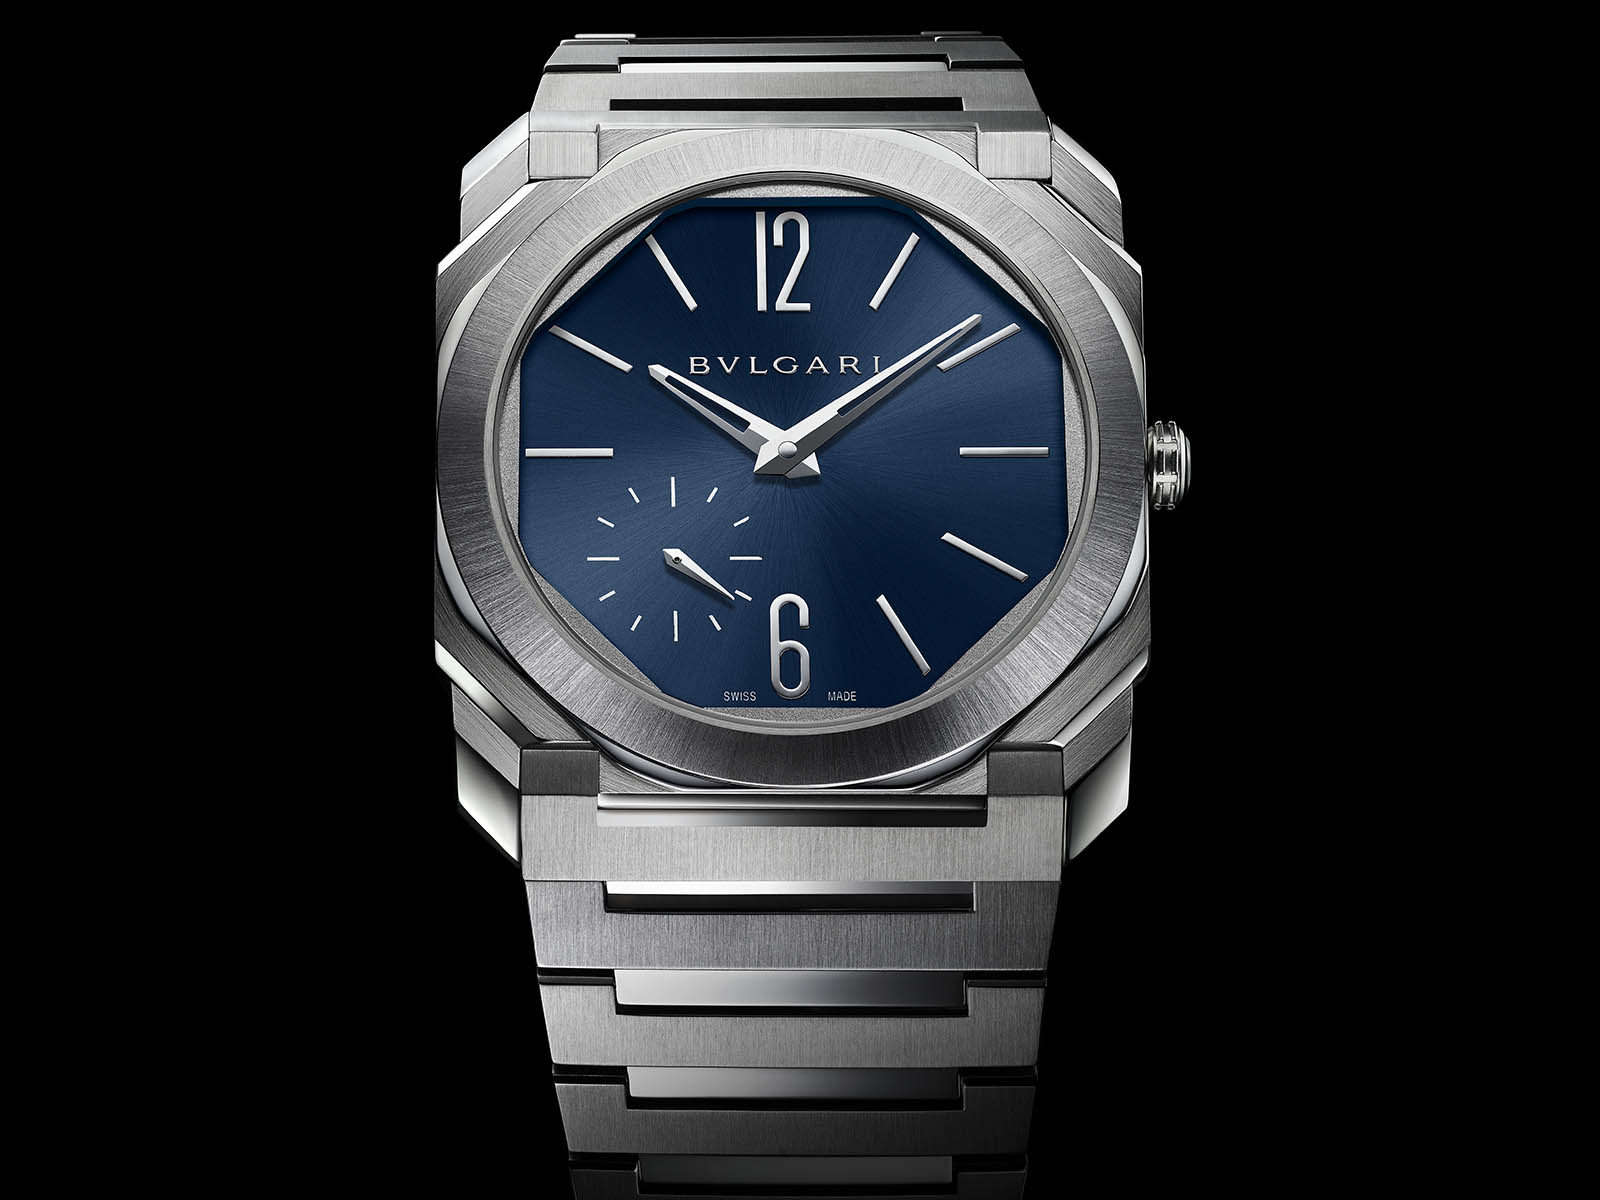 103431-bvlgari-octo-finissimo-blue-dial-in-steel-4.jpg